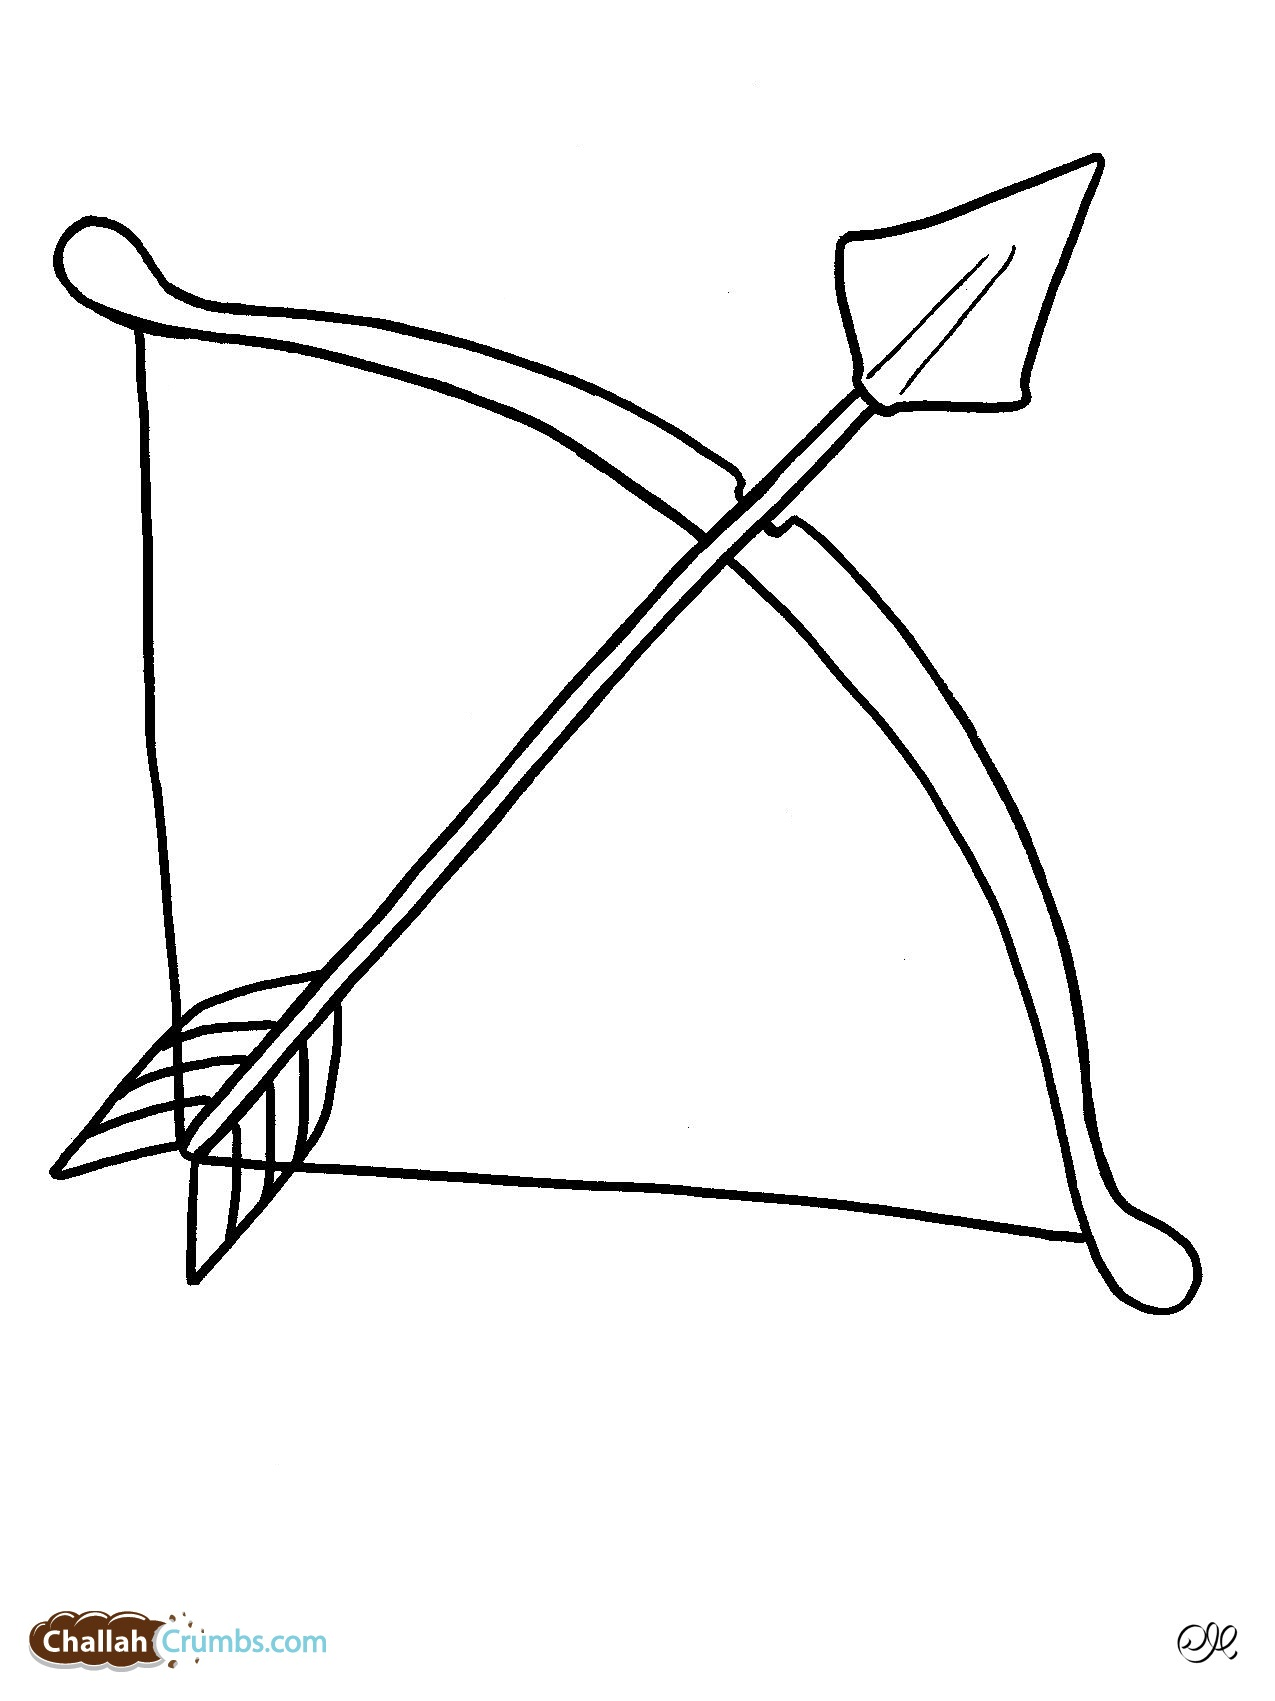 Free Bow And Arrow Black And White Download Free Clip Art Free Clip Art On Clipart Library